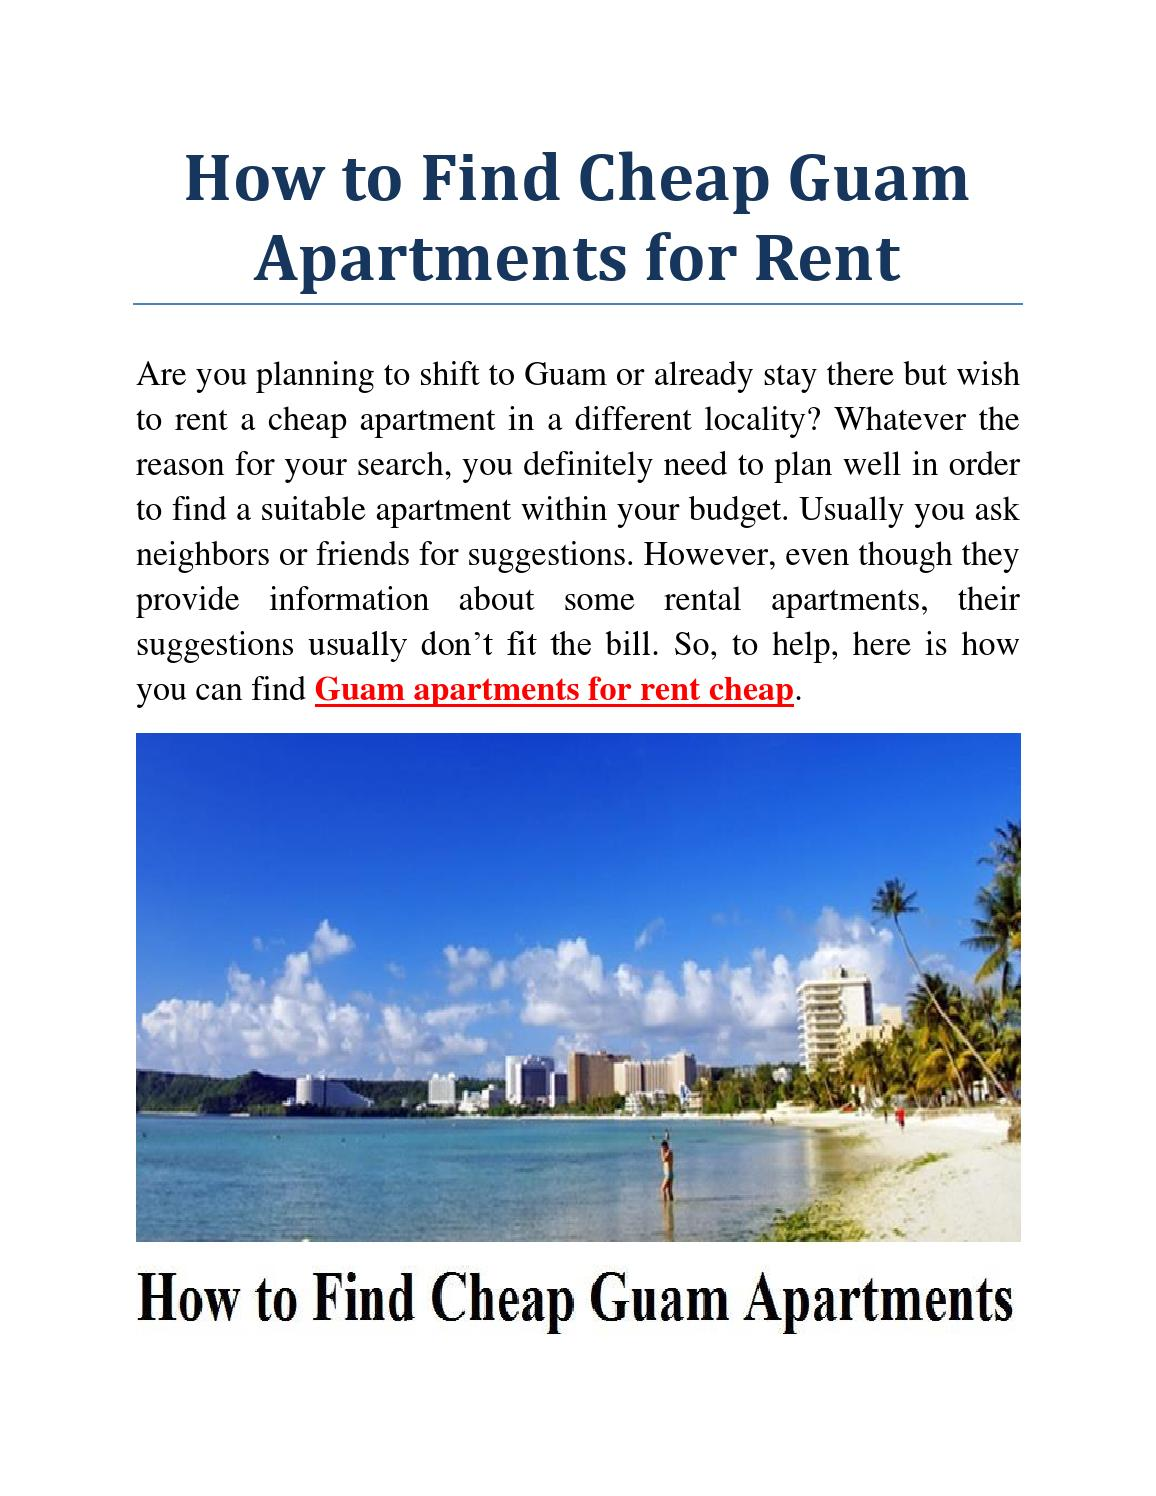 Guam Apartments For Rent Cheap By James Cannon Issuu